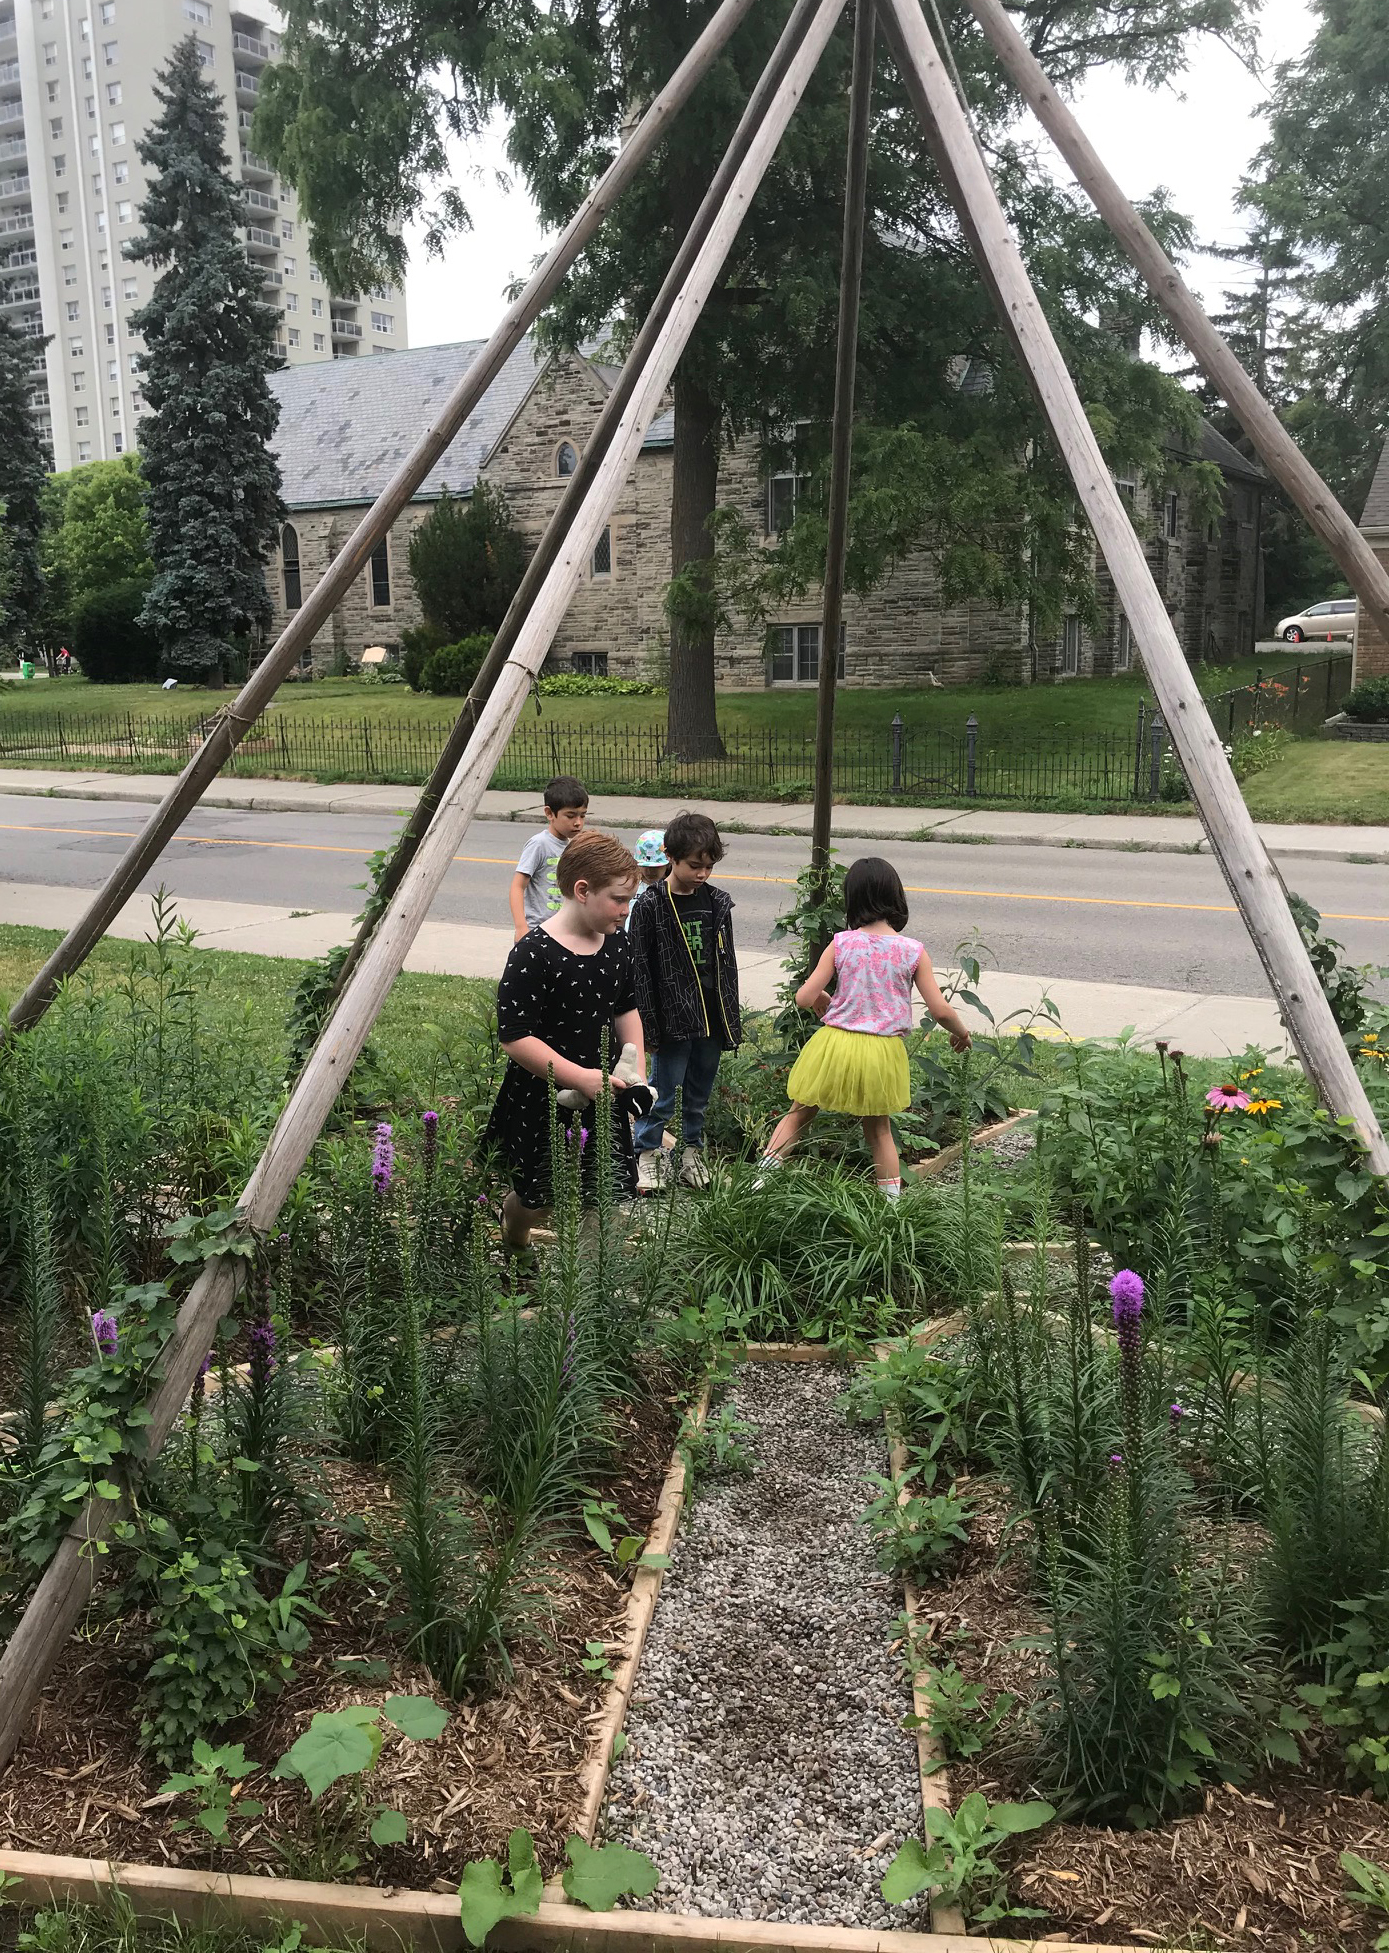 A small group of children standing on the pathways that intersect a medicine and butterfly garden growing beneath tall tipi poles in a green space adjoining an urban street